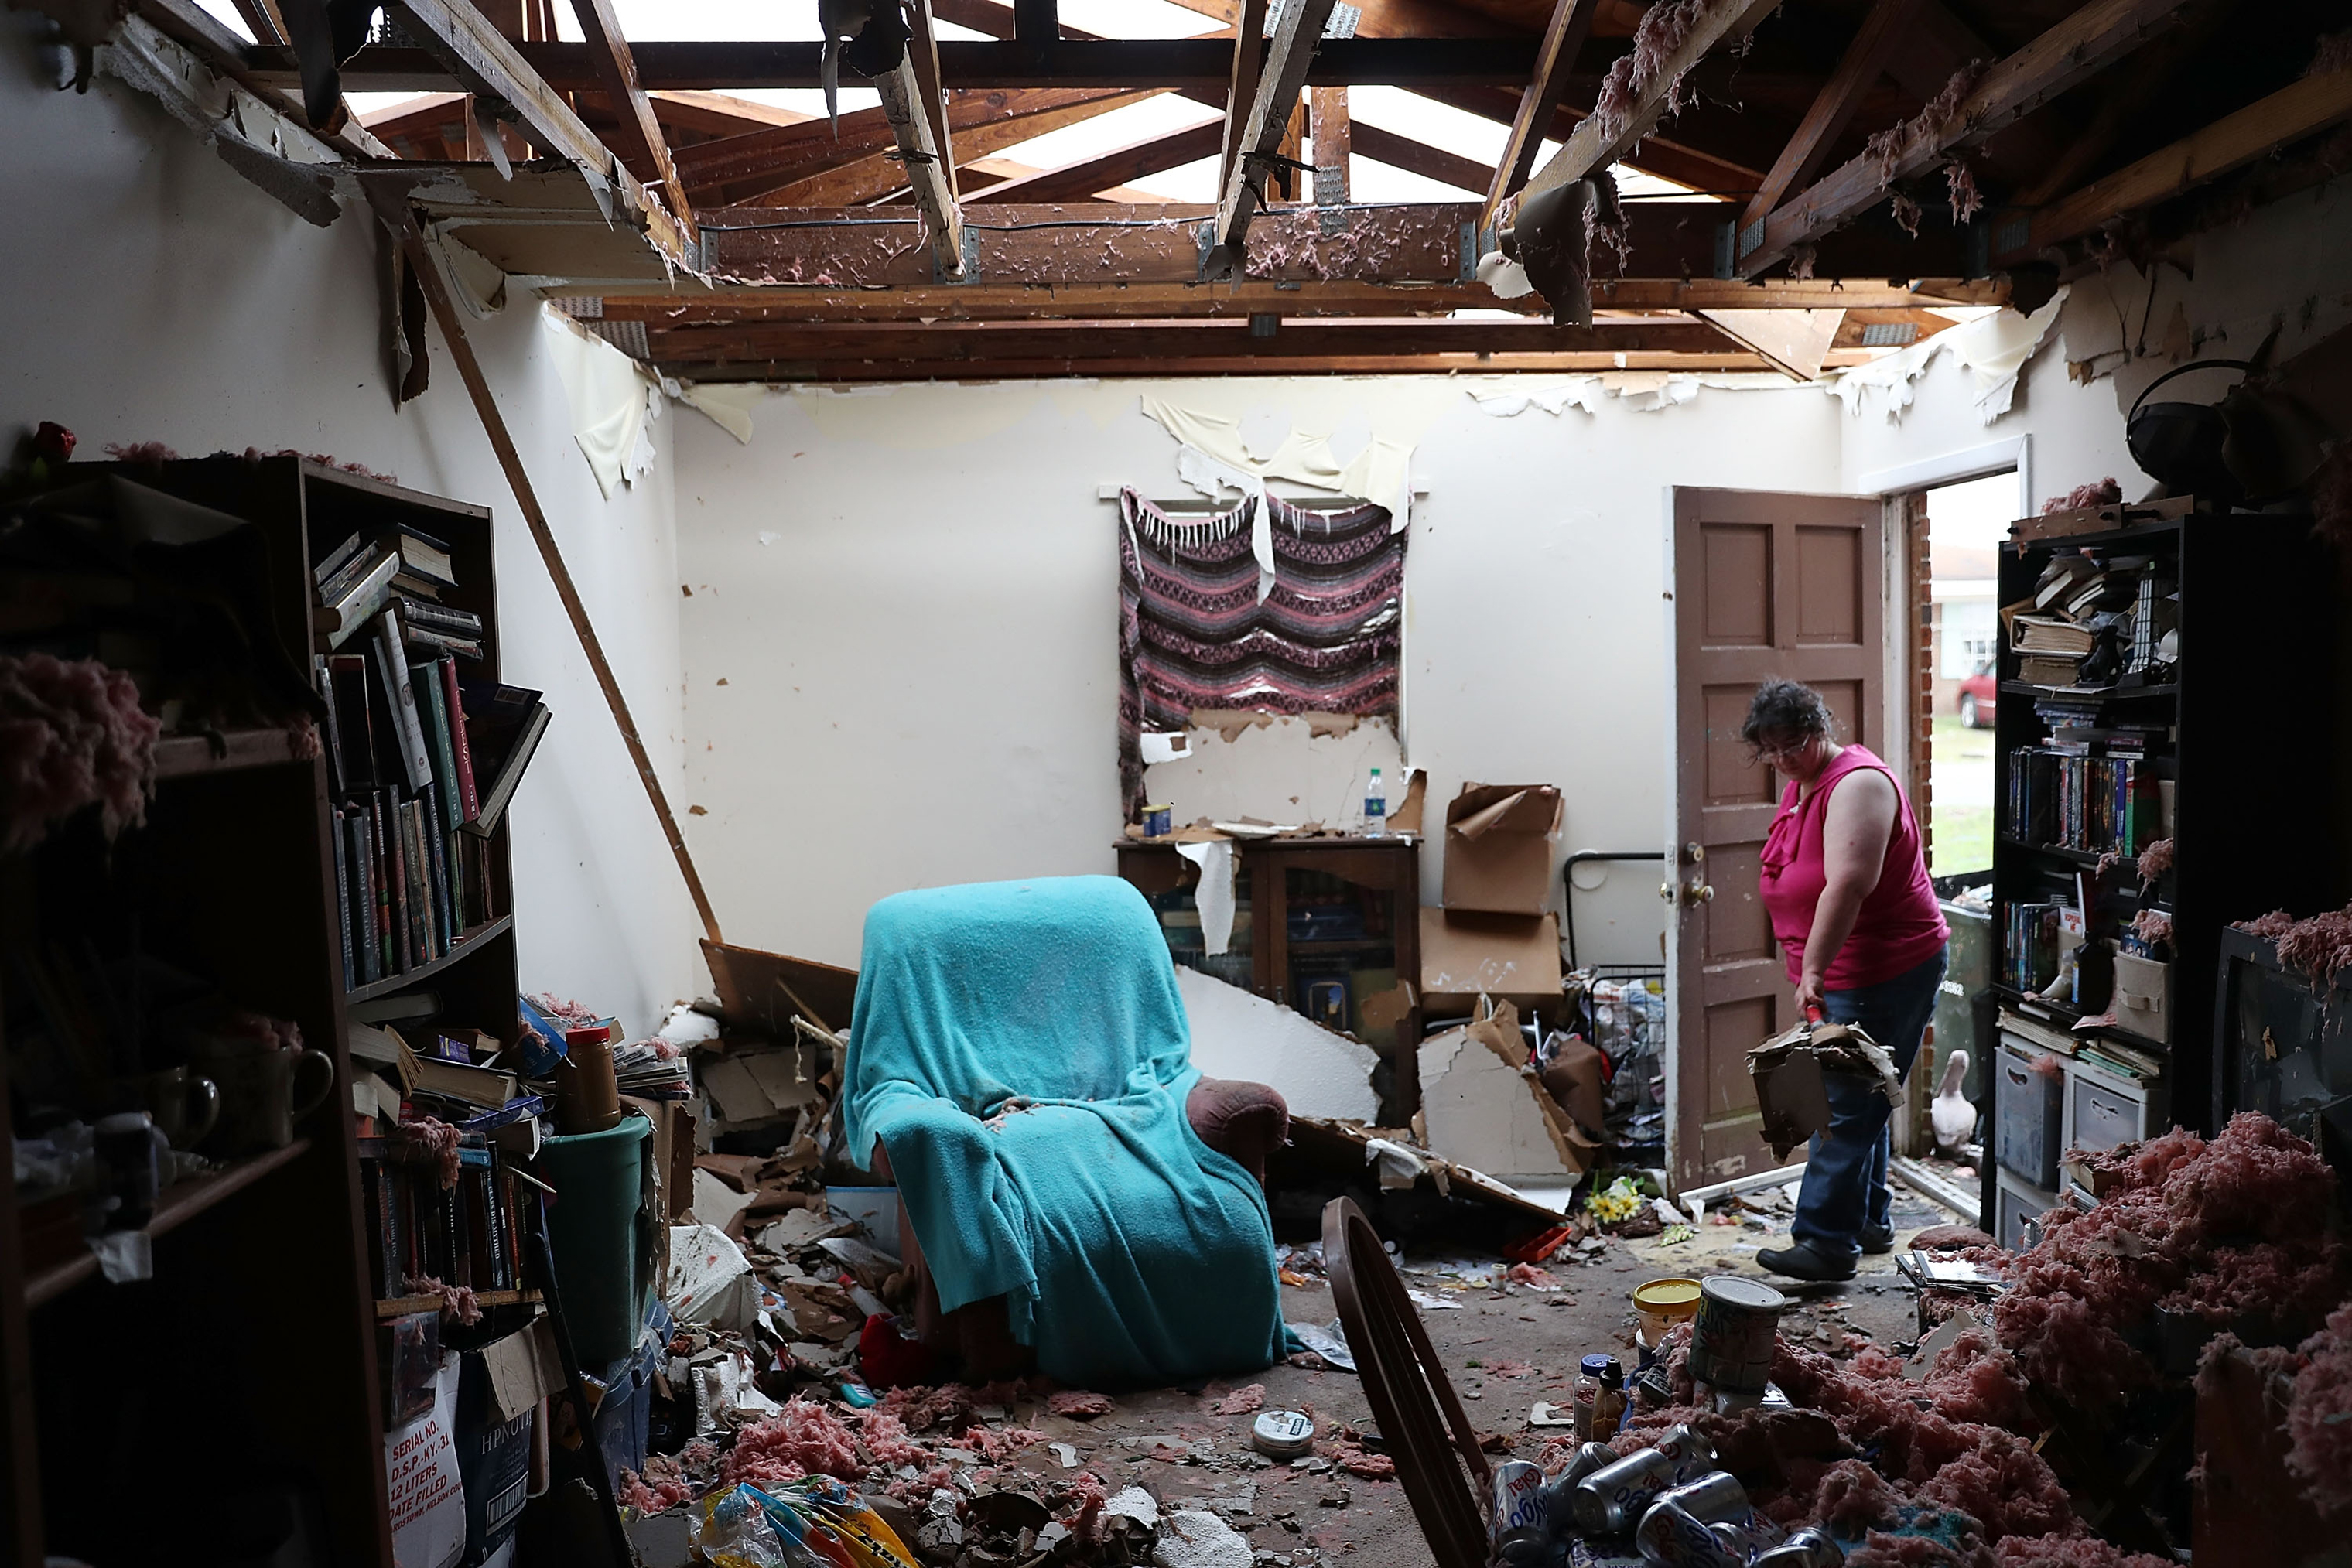 Amanda Logsdon begins the process of trying to clean up her home after the roof was blown off by the passing winds of Hurricane Michael on Oct. 11, 2018 in Panama City, Fla.